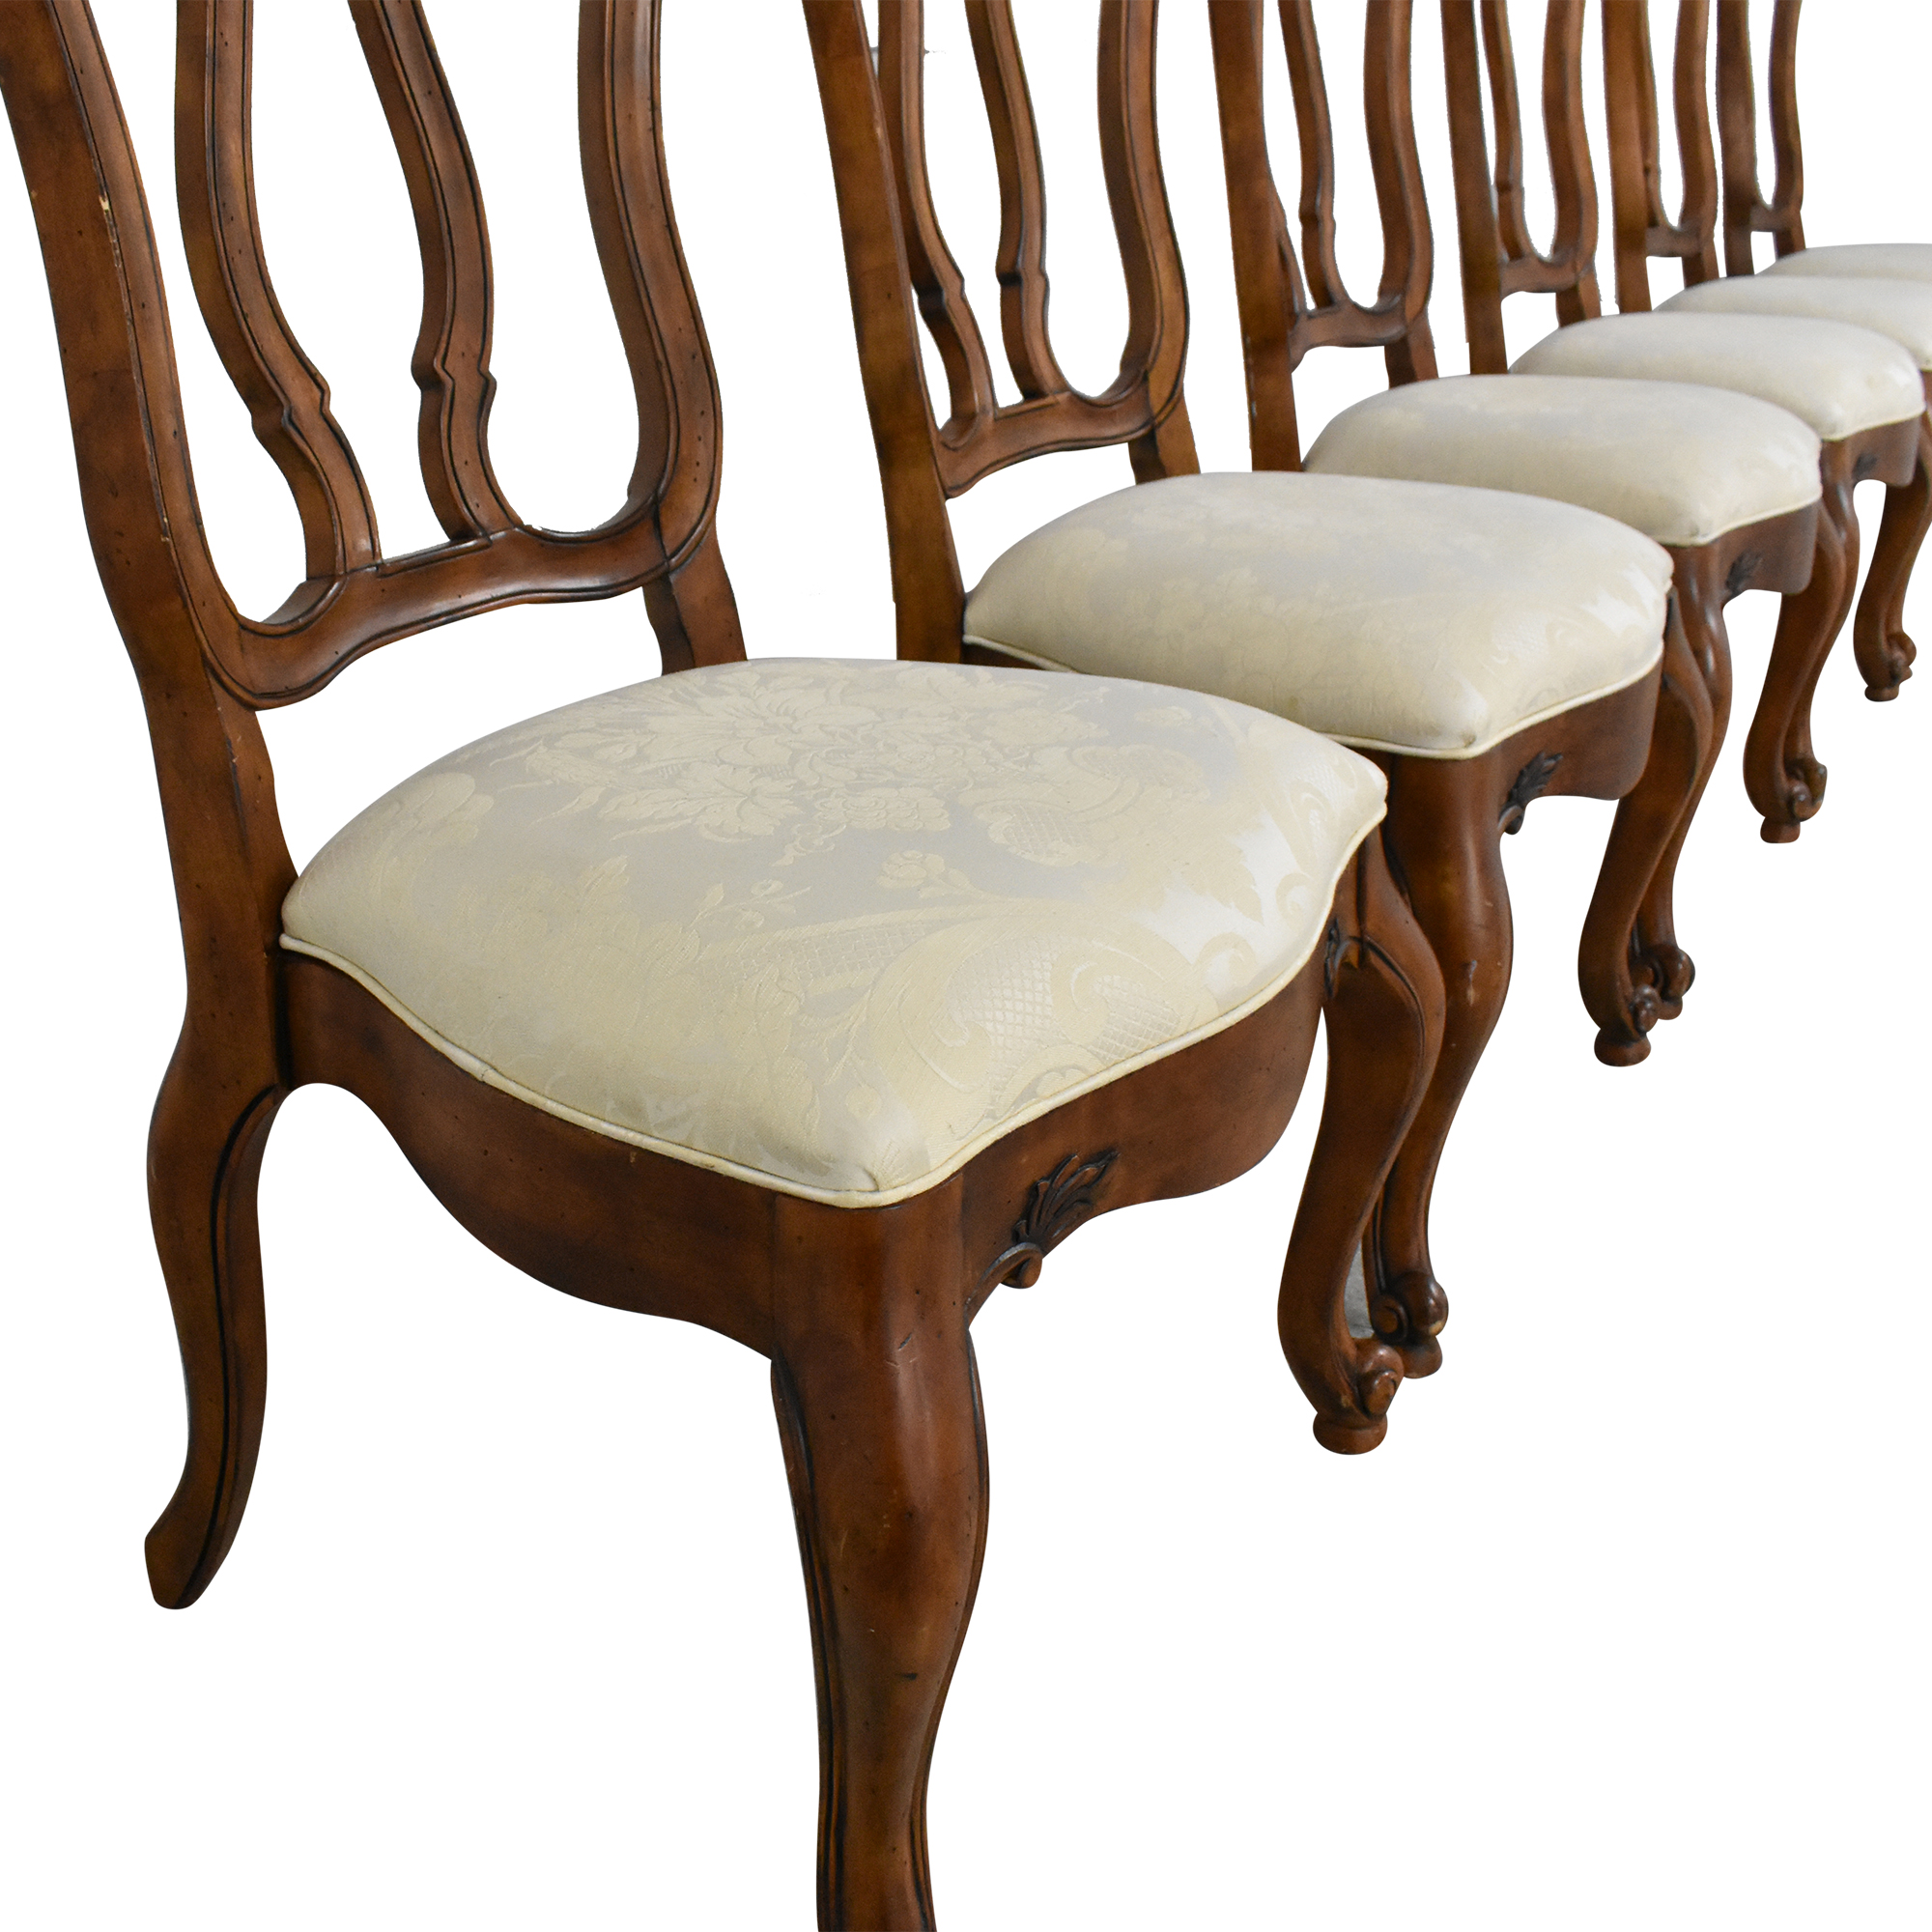 Ethan Allen Ethan Allen Tuscany Augustine Side Dining Chairs coupon